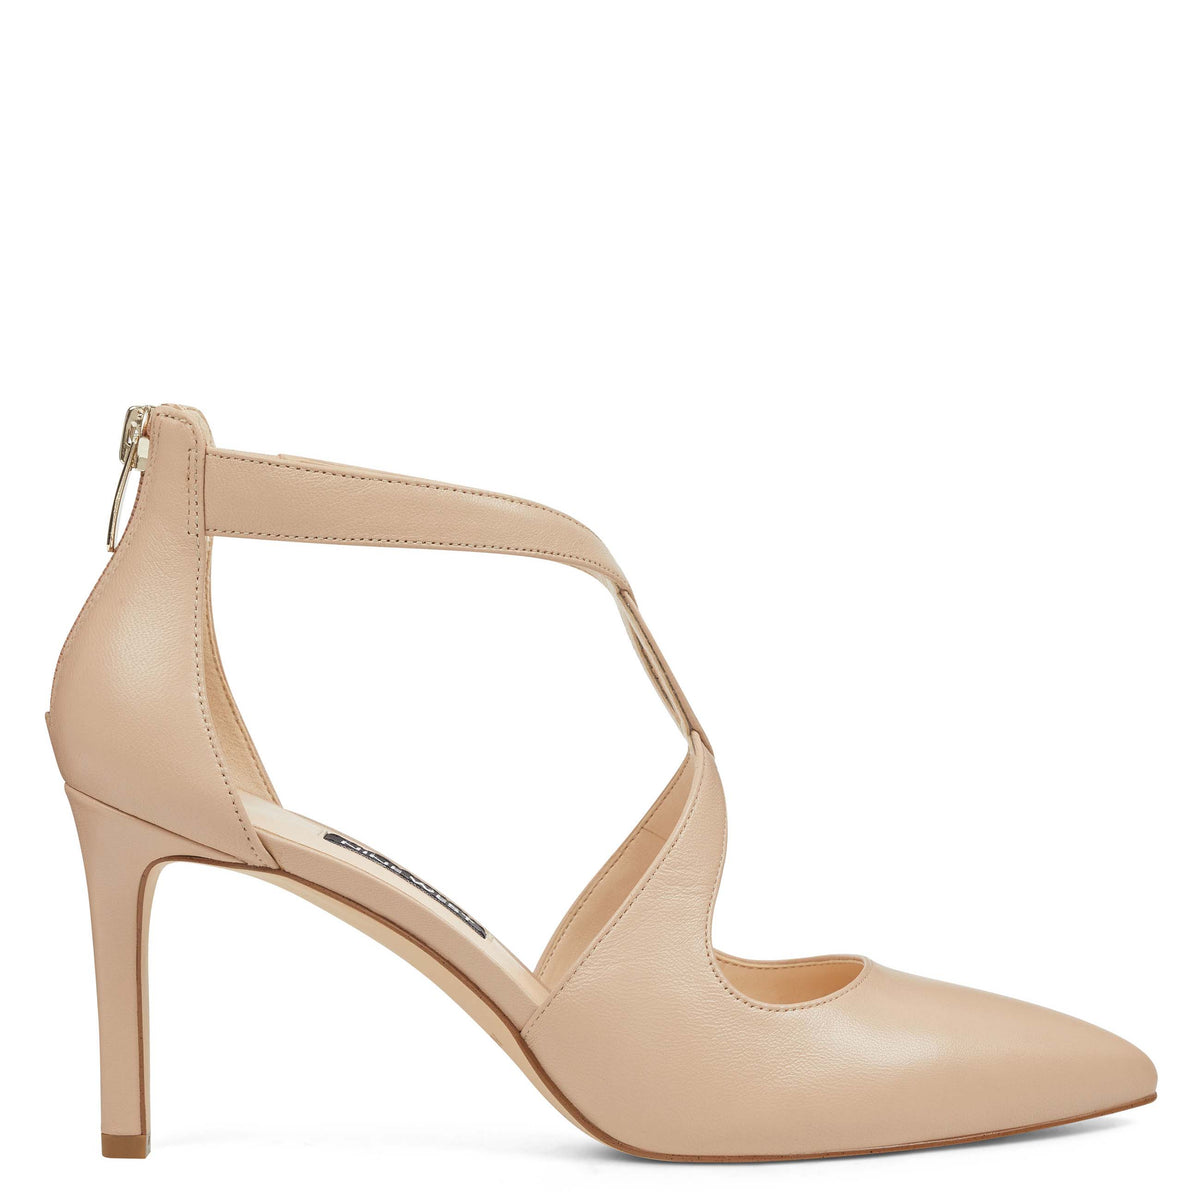 Cayden Pointy Toe Pumps